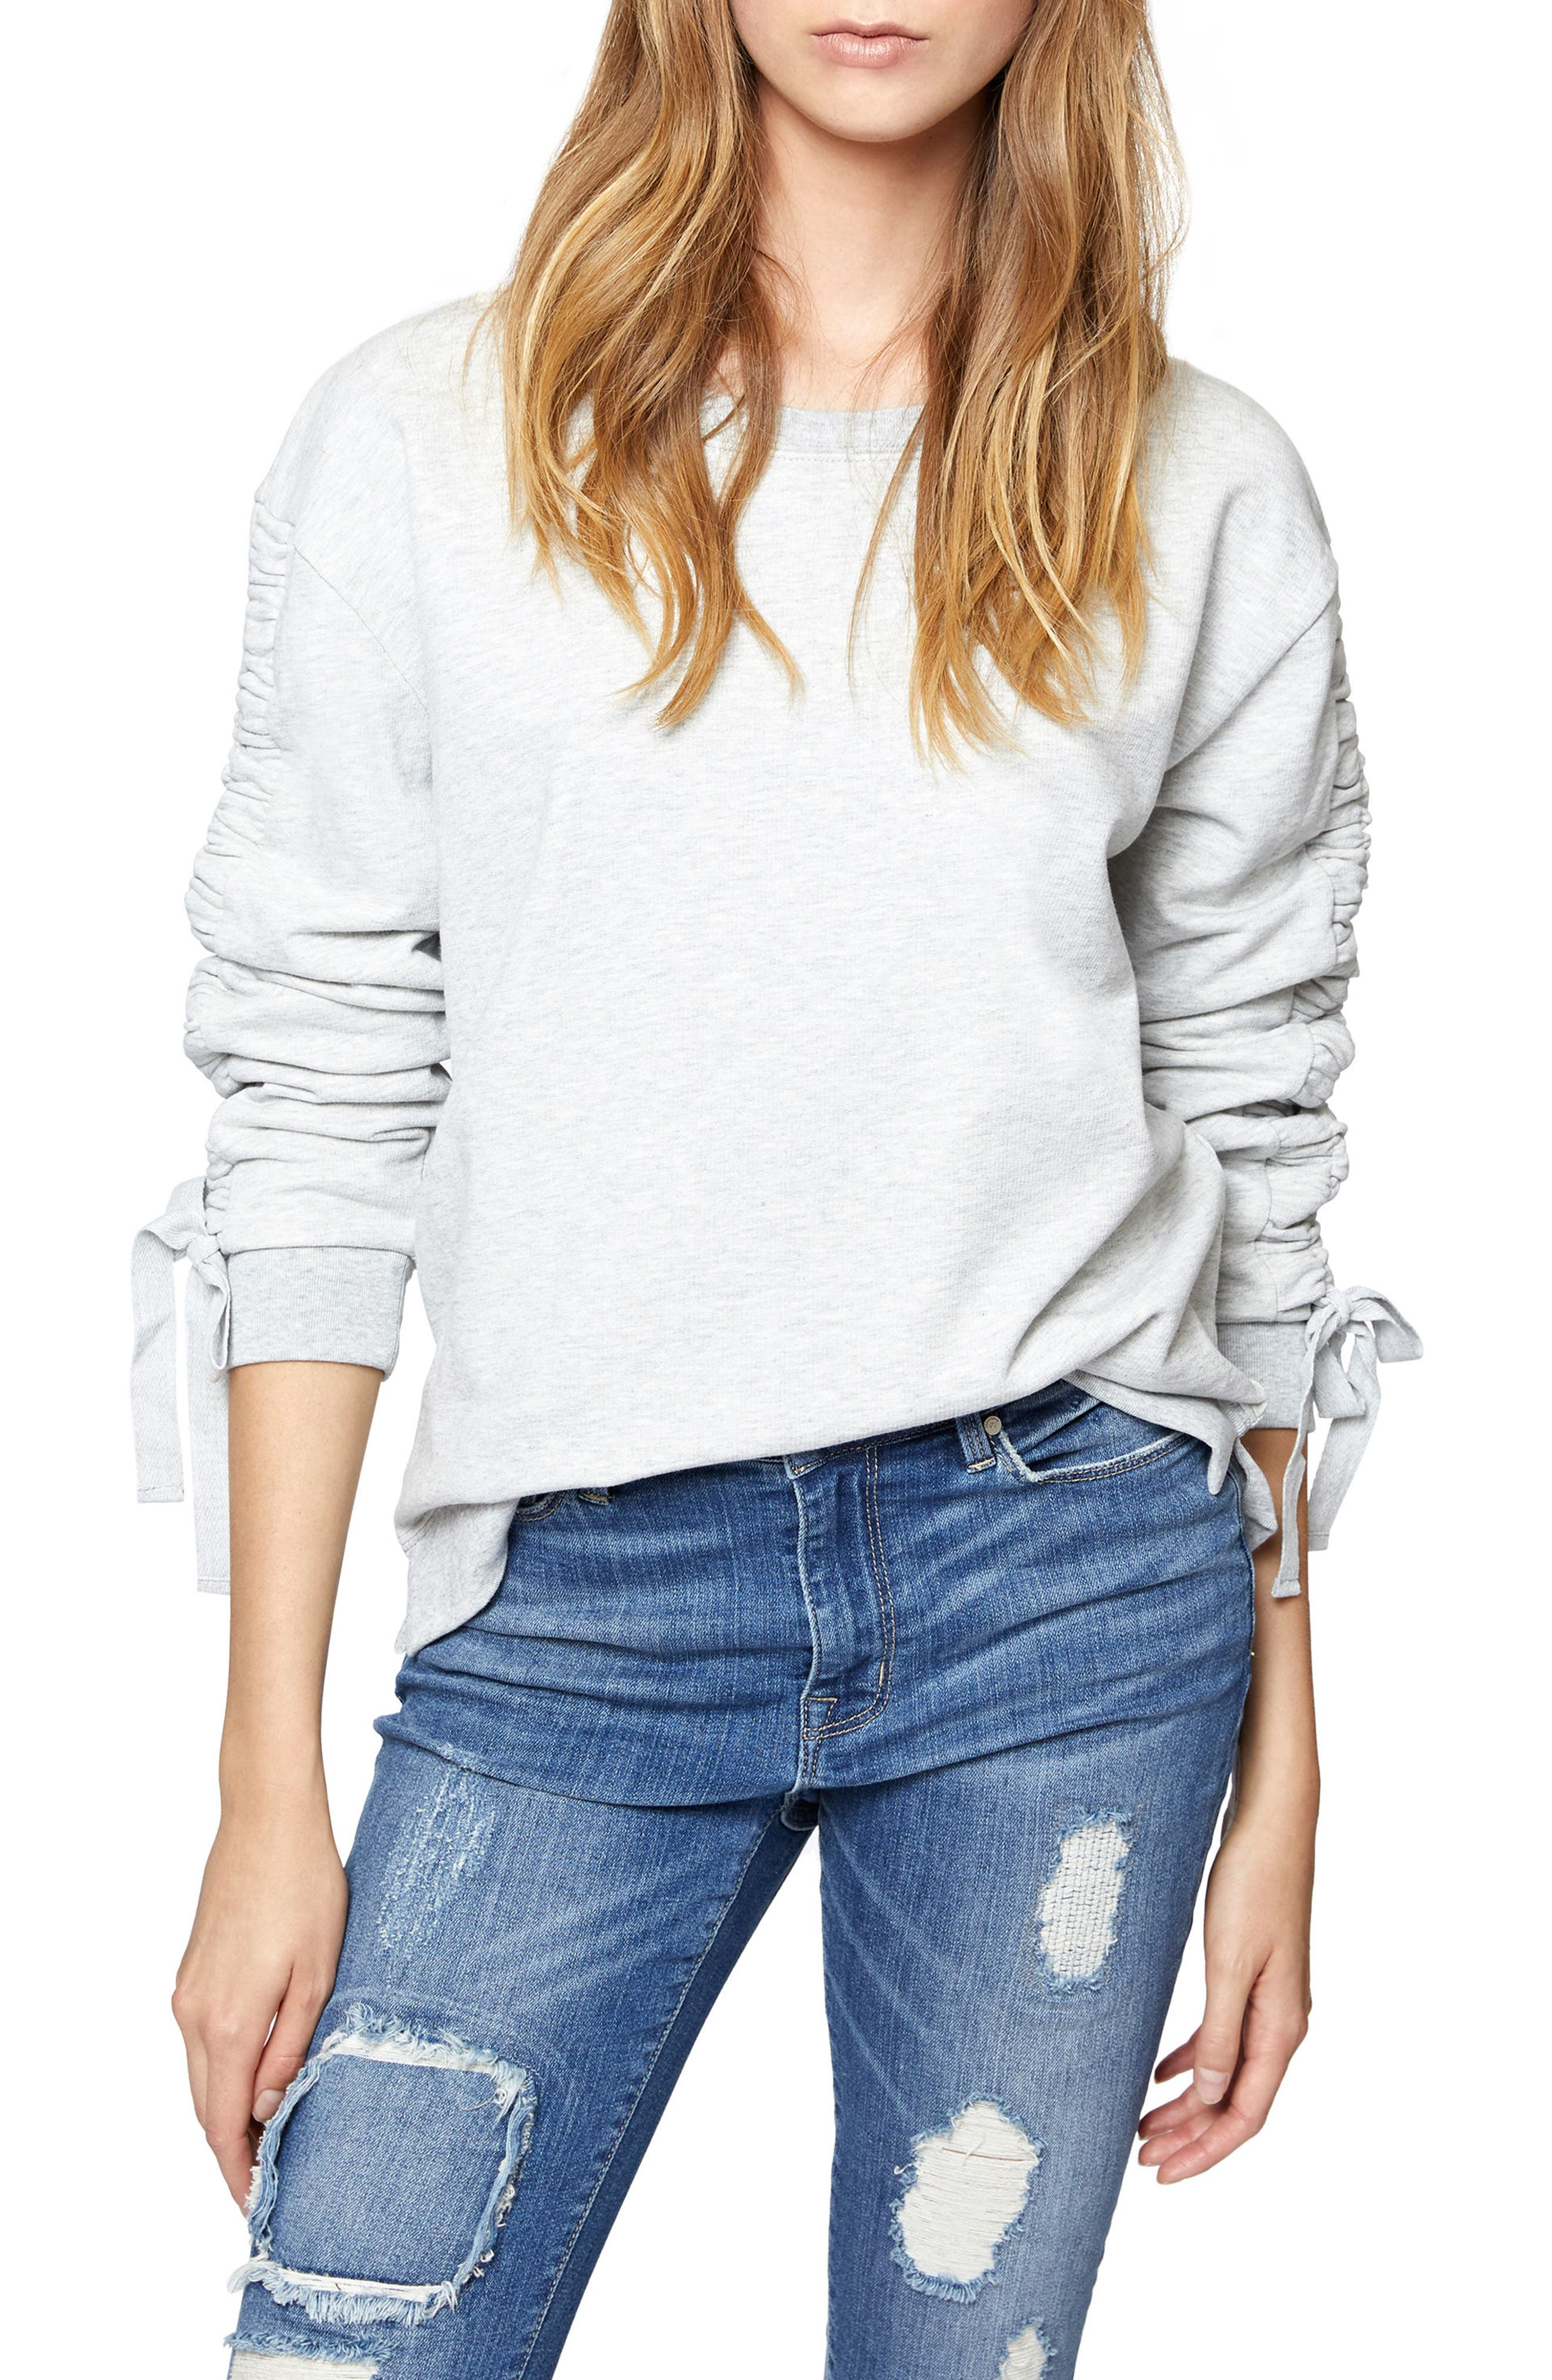 Alternate Image 1 Selected - Sanctuary Camden Ruched Sweatshirt (Regular & Petite)